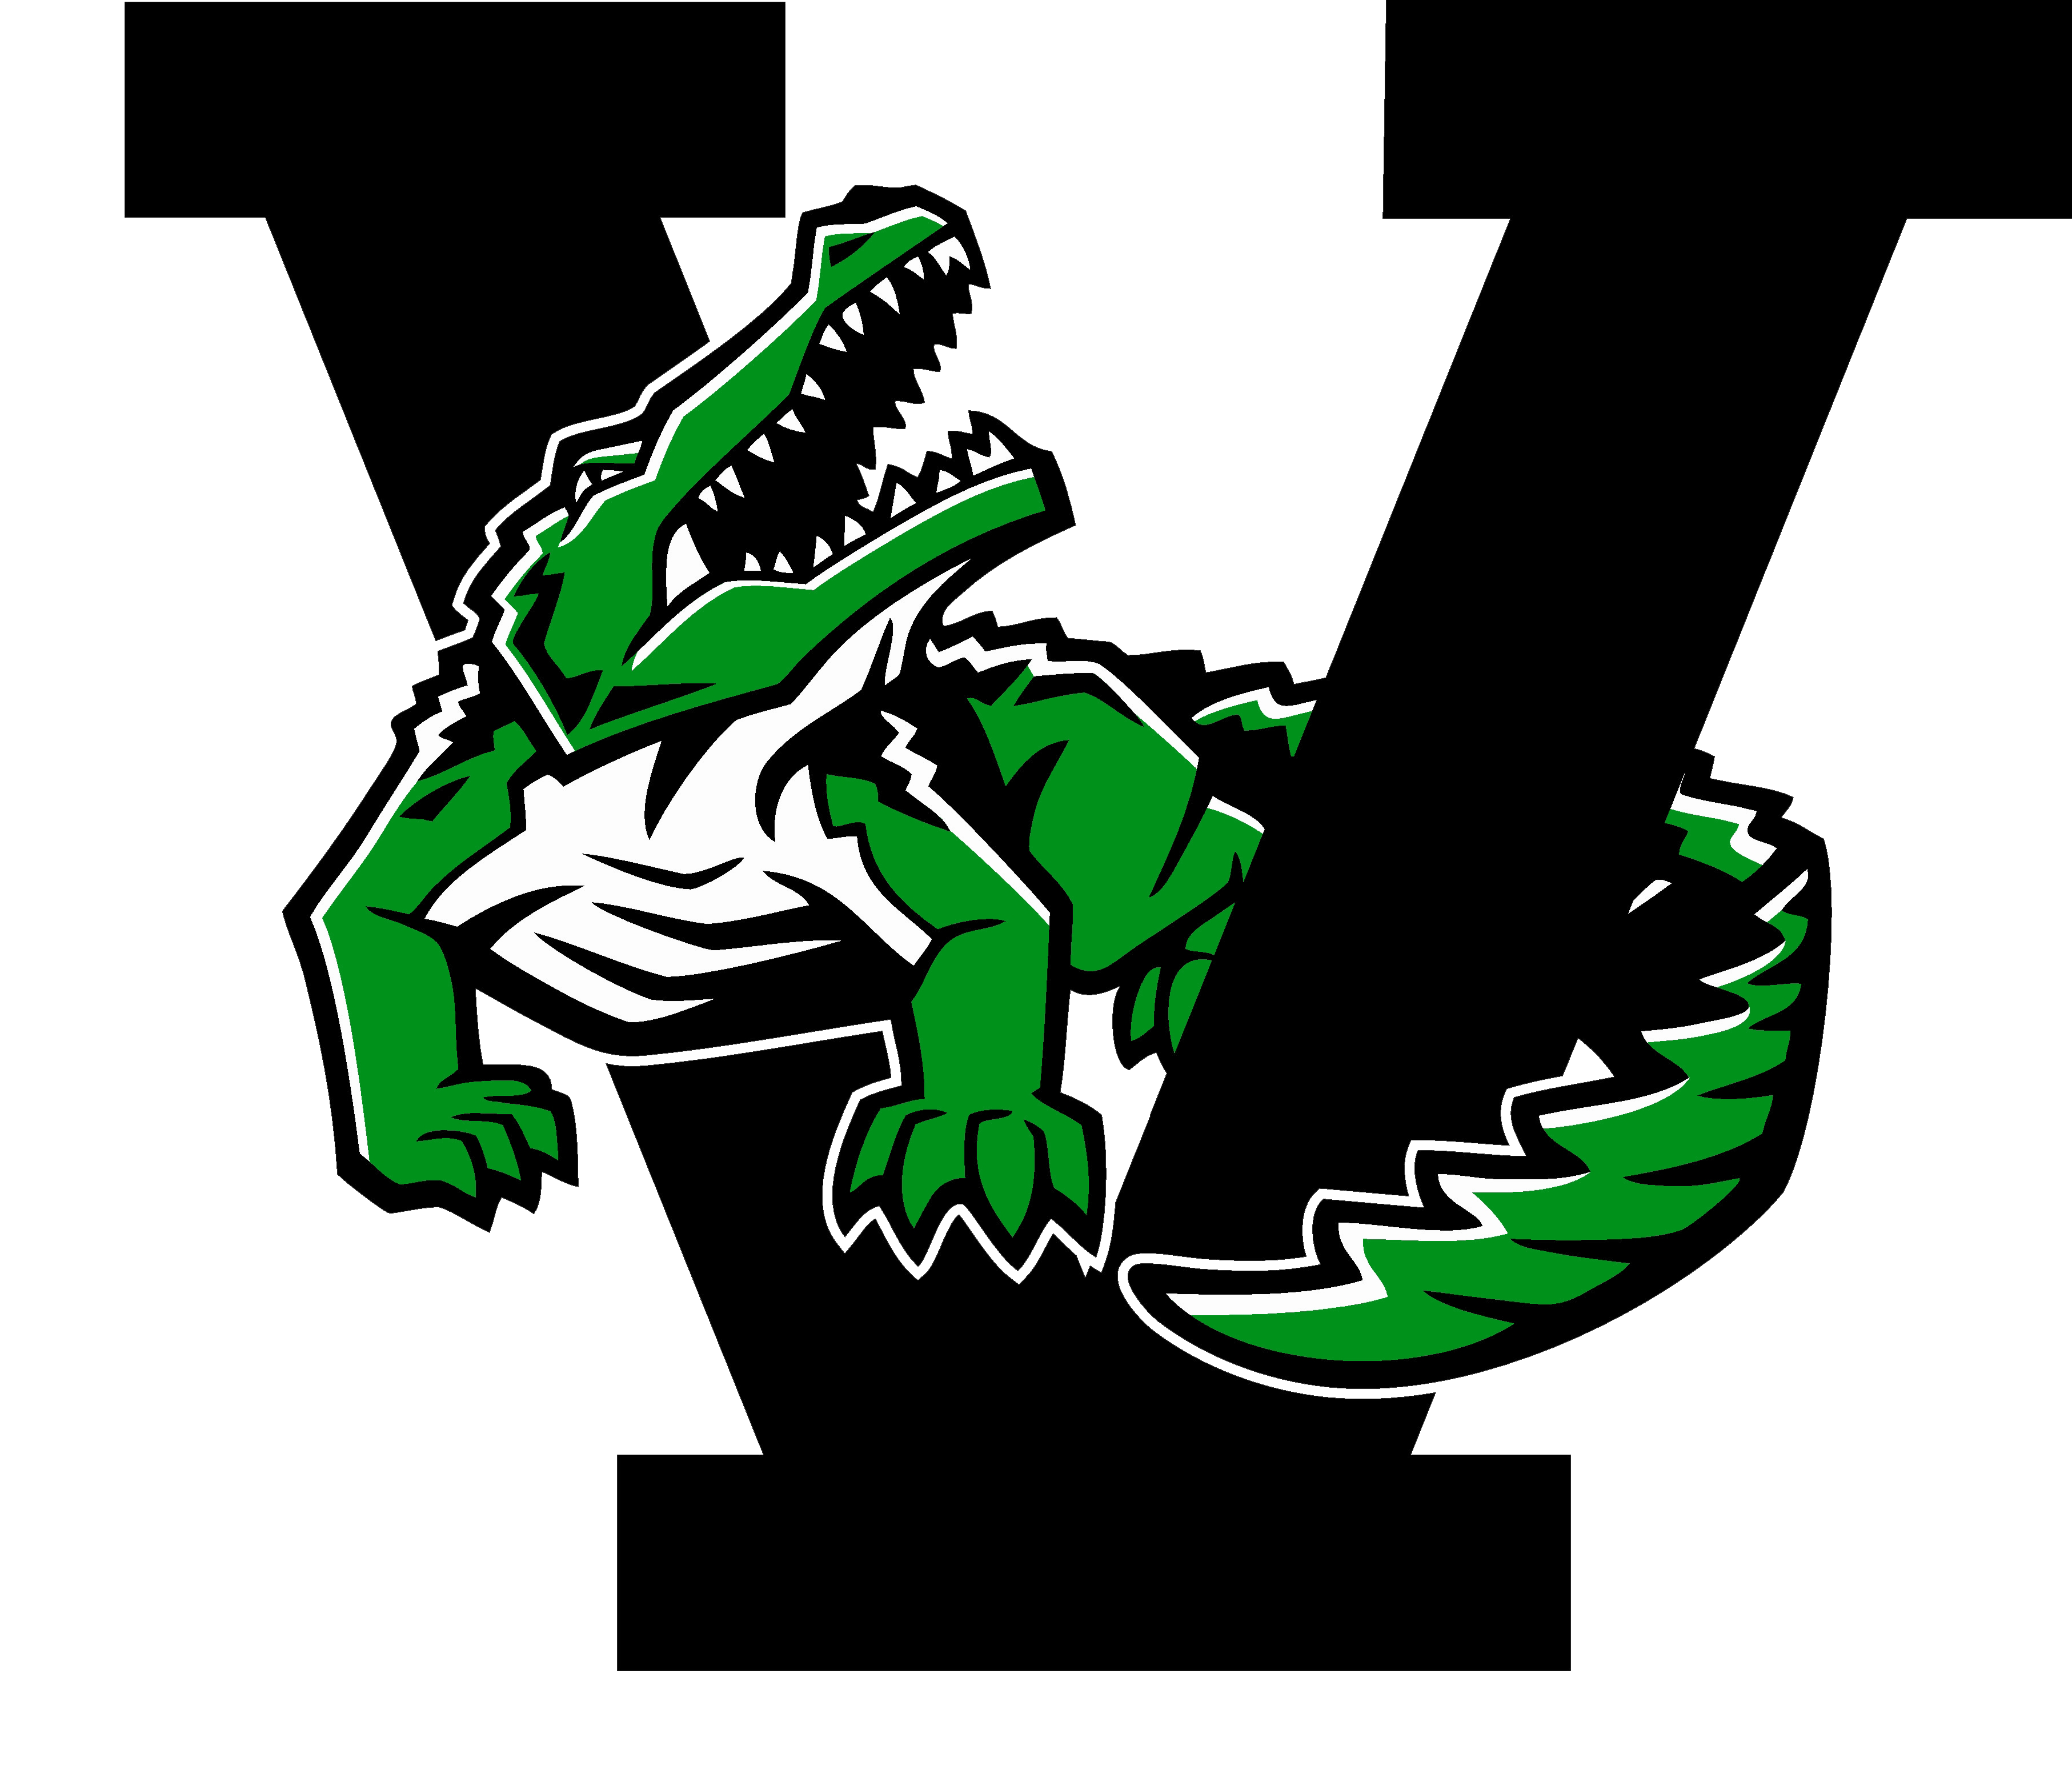 Sponsorship gatorv. Clipart volleyball gator